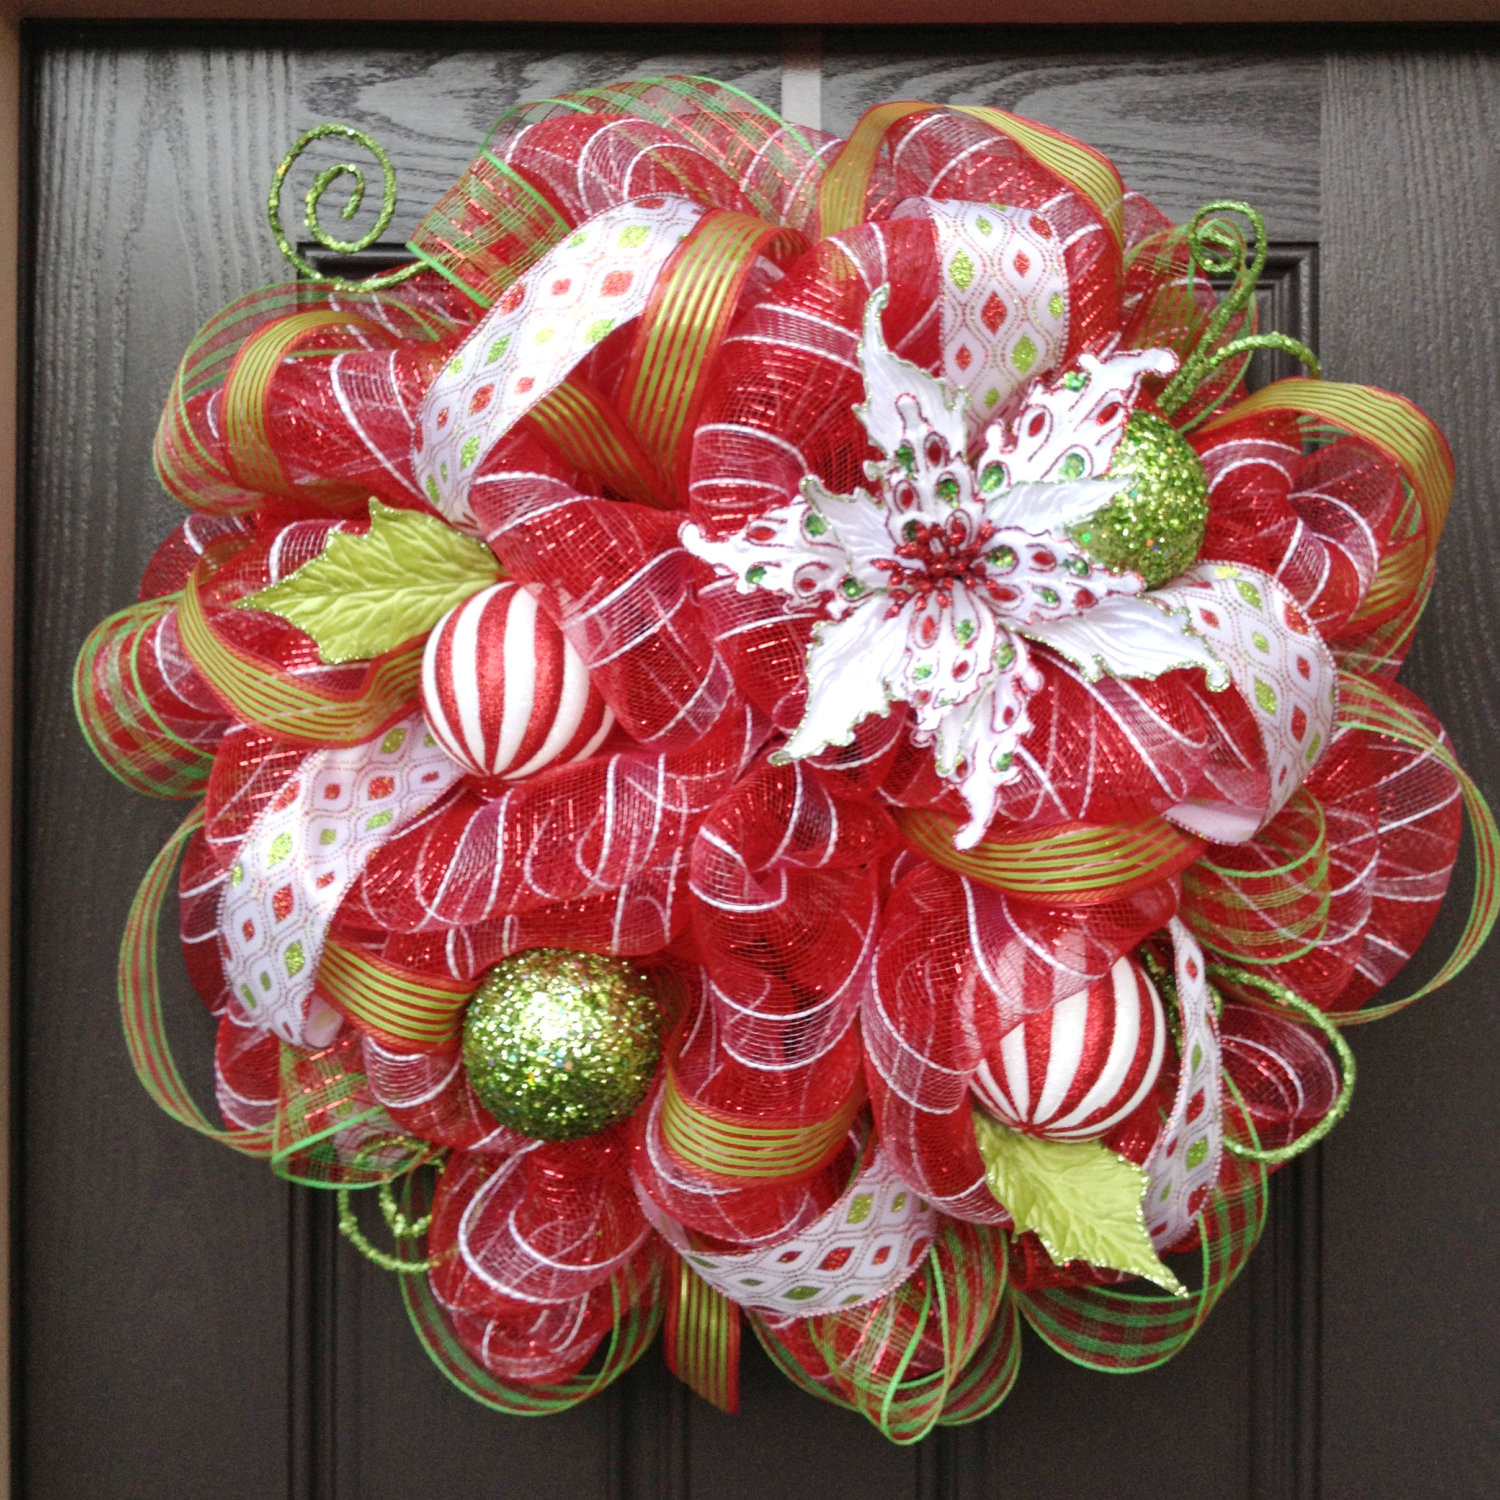 Best ideas about Mesh Wreaths DIY . Save or Pin Red White Striped Christmas Deco Mesh Wreath Now.